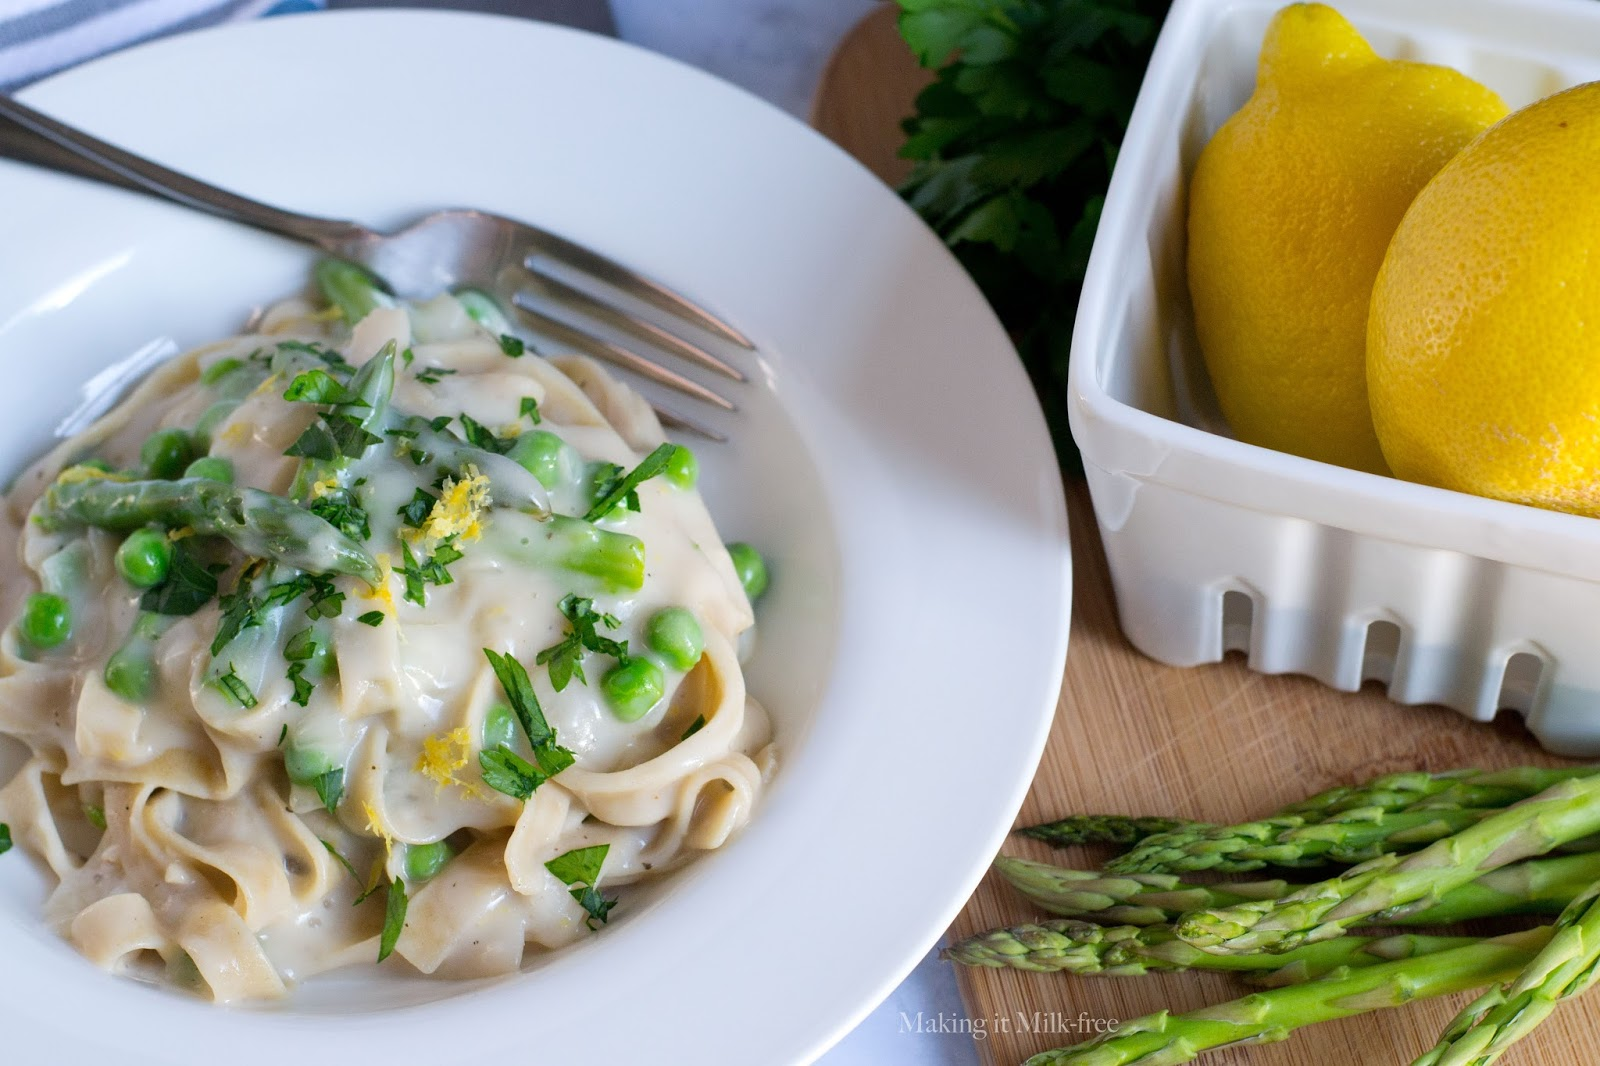 Pasta with Savory Lemon Cream Sauce from Making it Milk-free